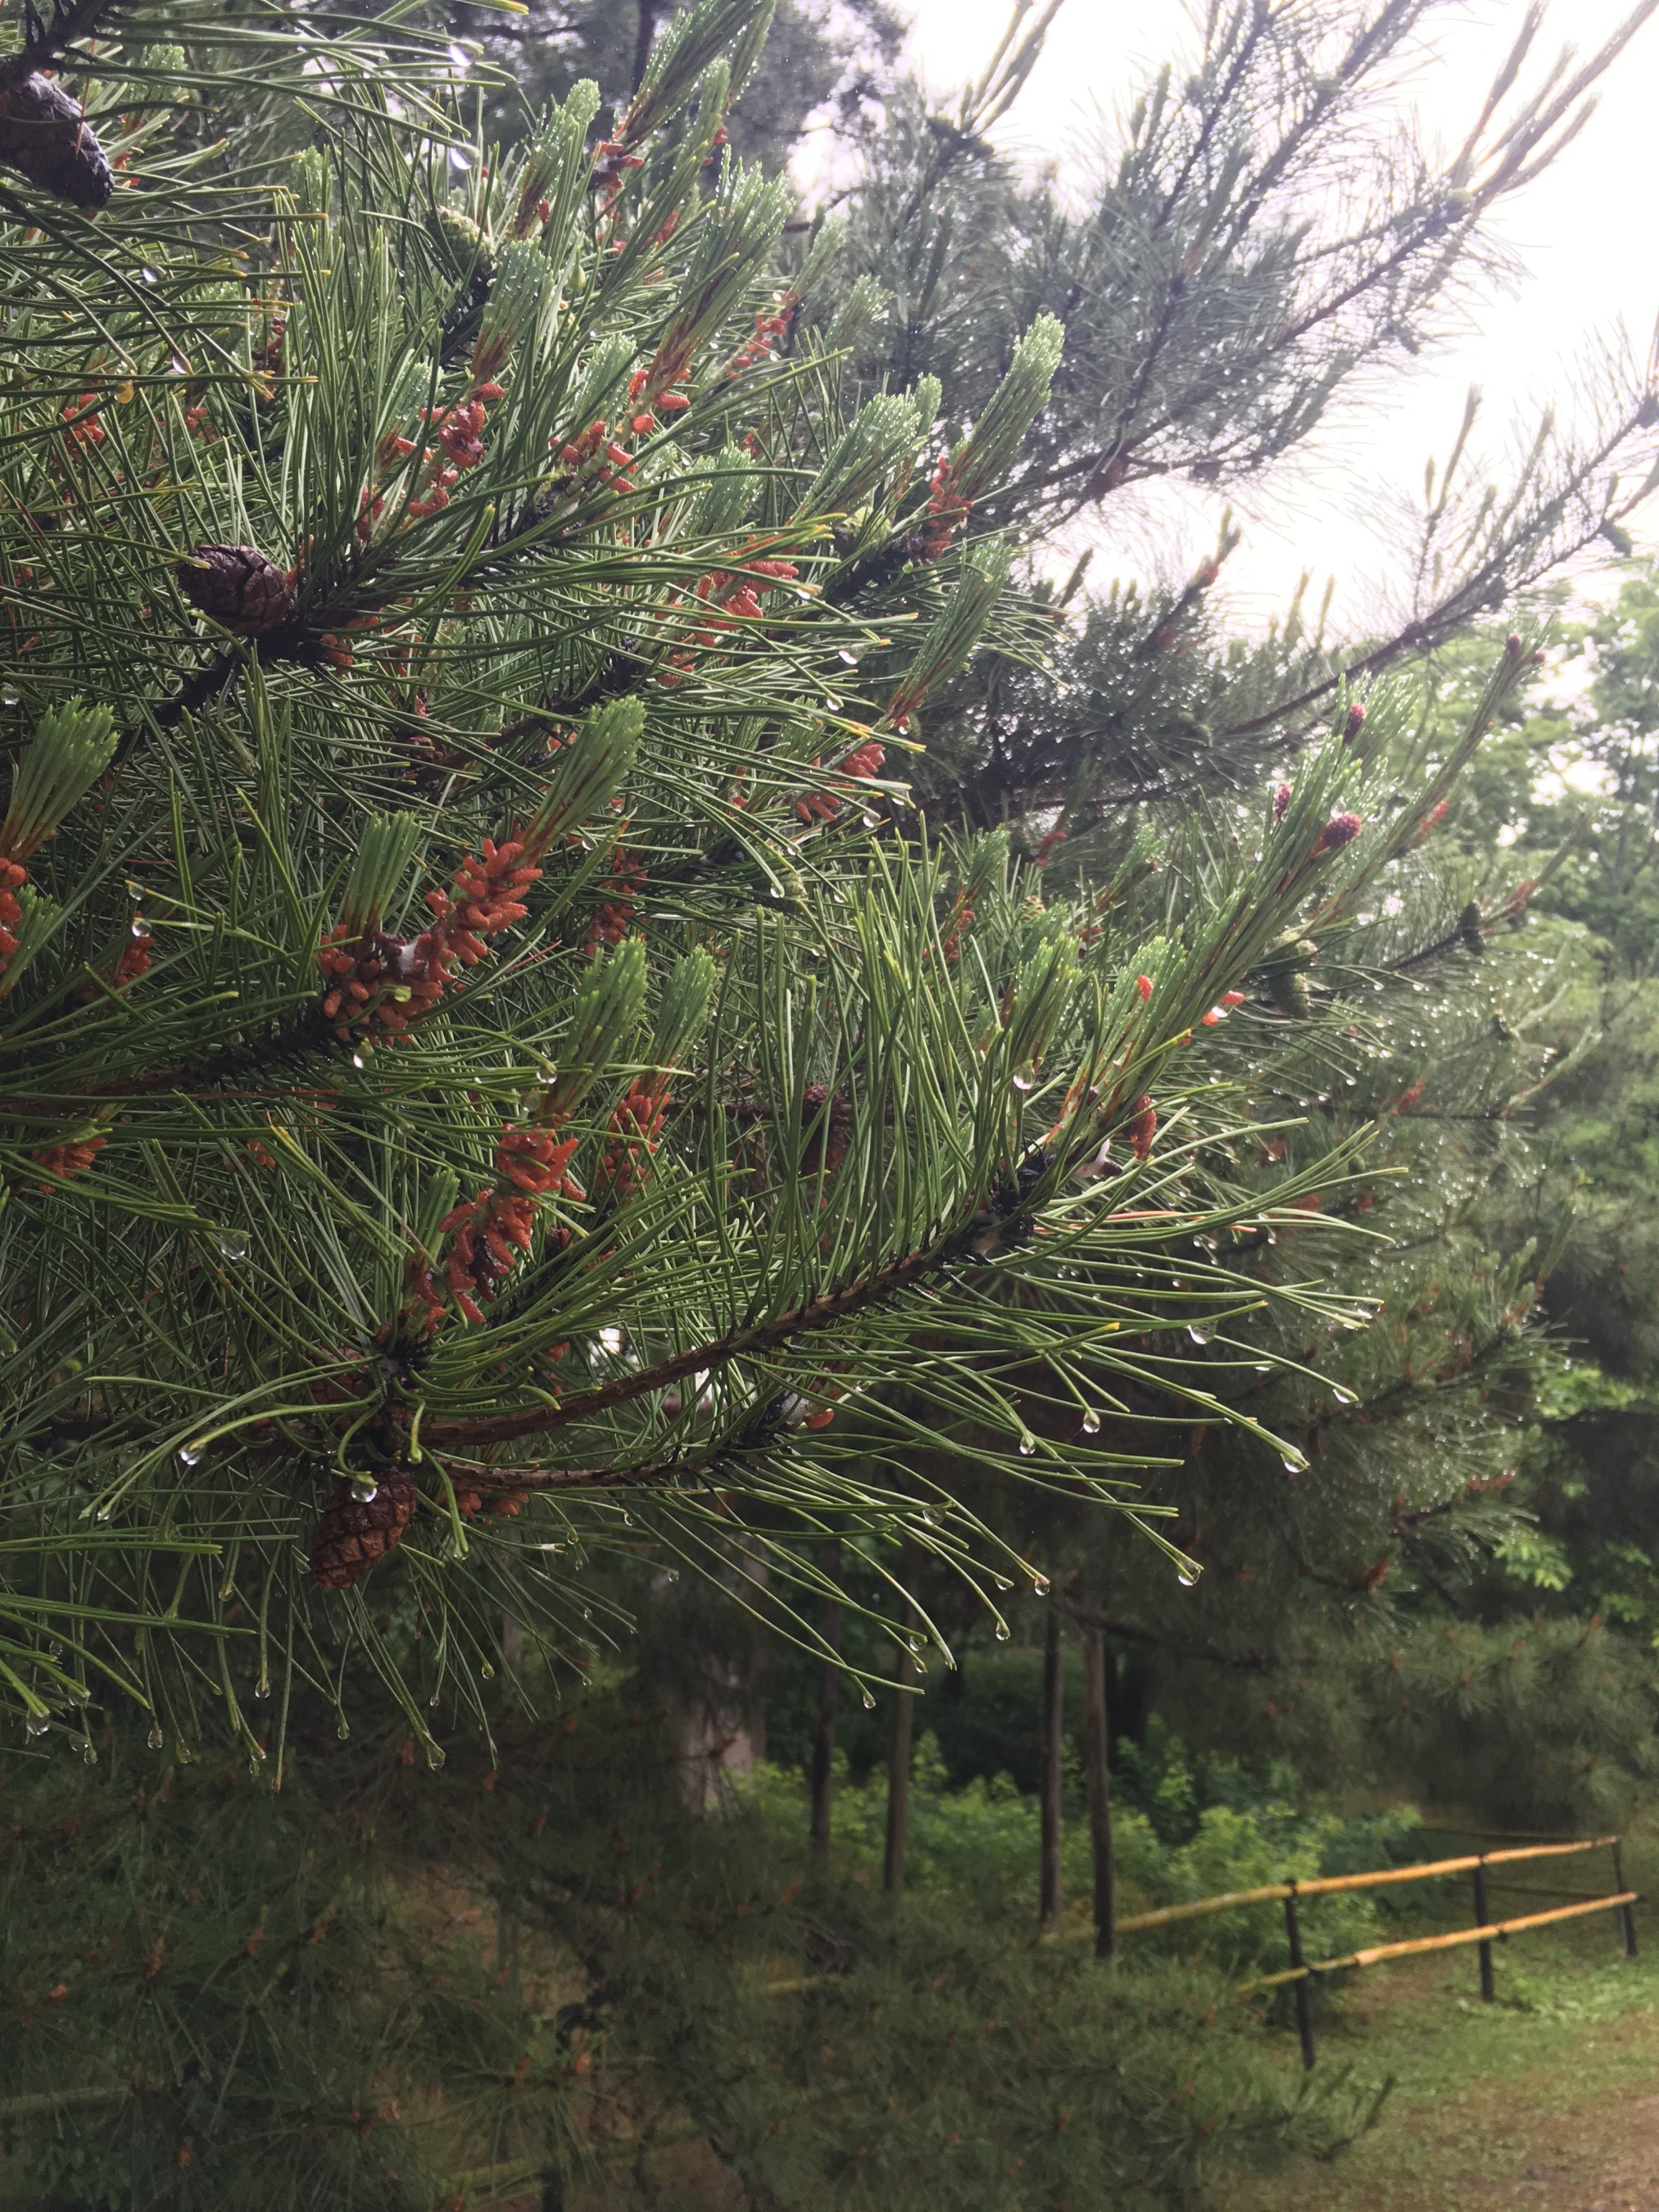 Raindrops sit on the tips of these pine needles after a gentle shower the evening before. The sound of raindrops or water dripping is called potsu-potsu in Japan. I have seen an advertisement for an umbrella that highlights the special sound it makes when the rain falls on it.